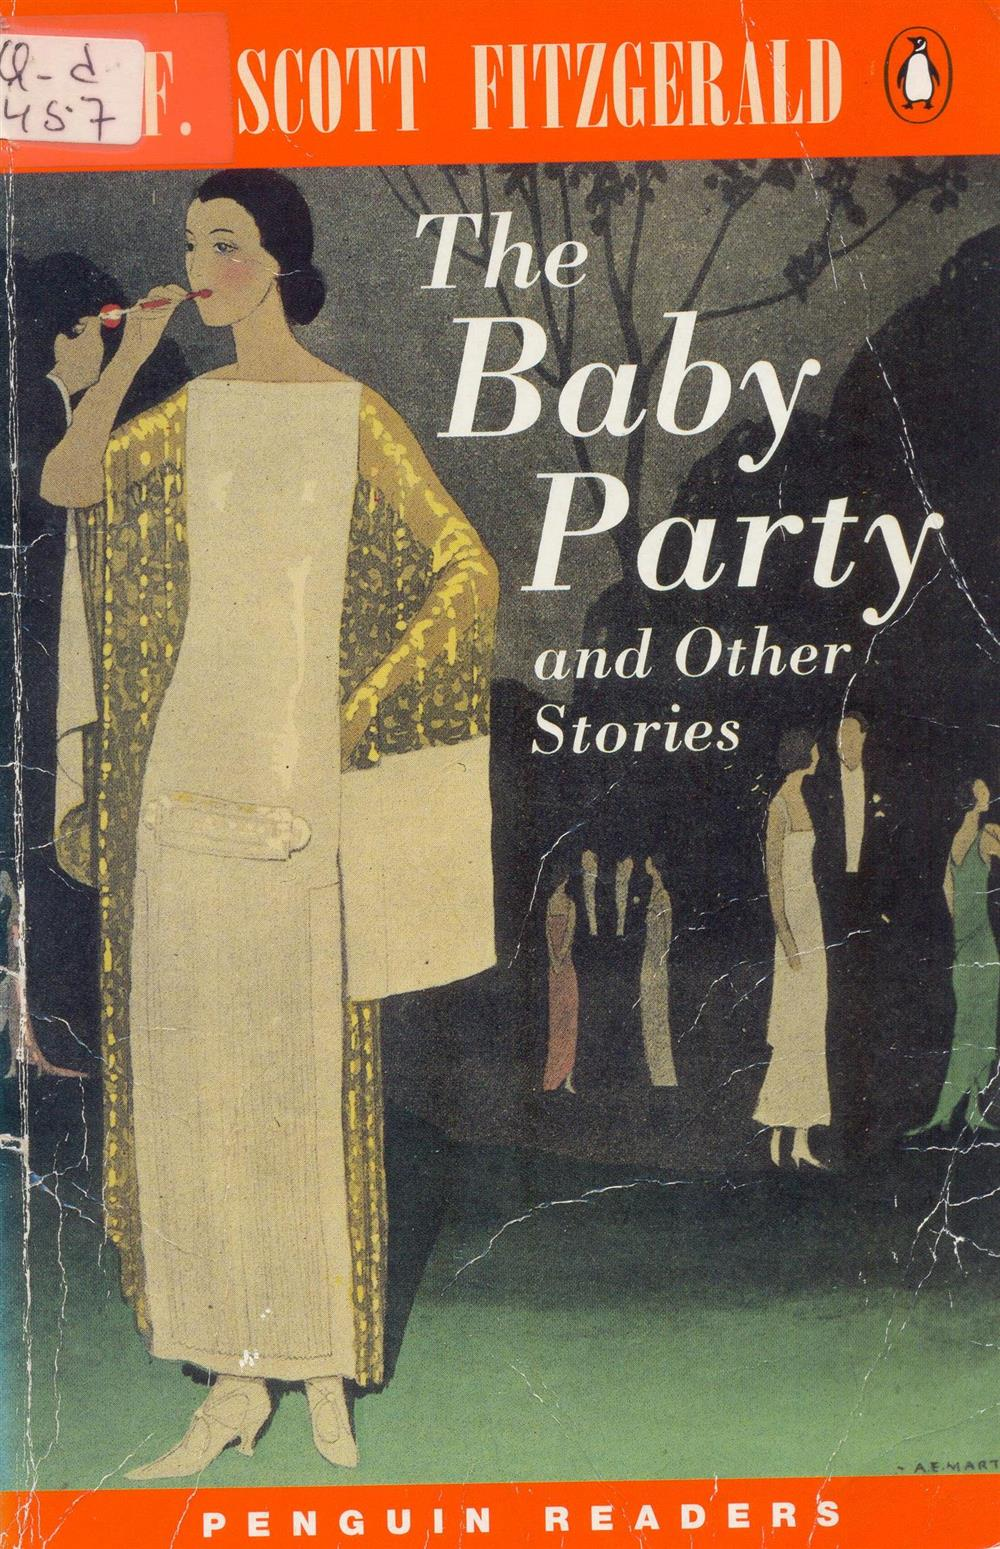 The baby party and other stories 001.jpg